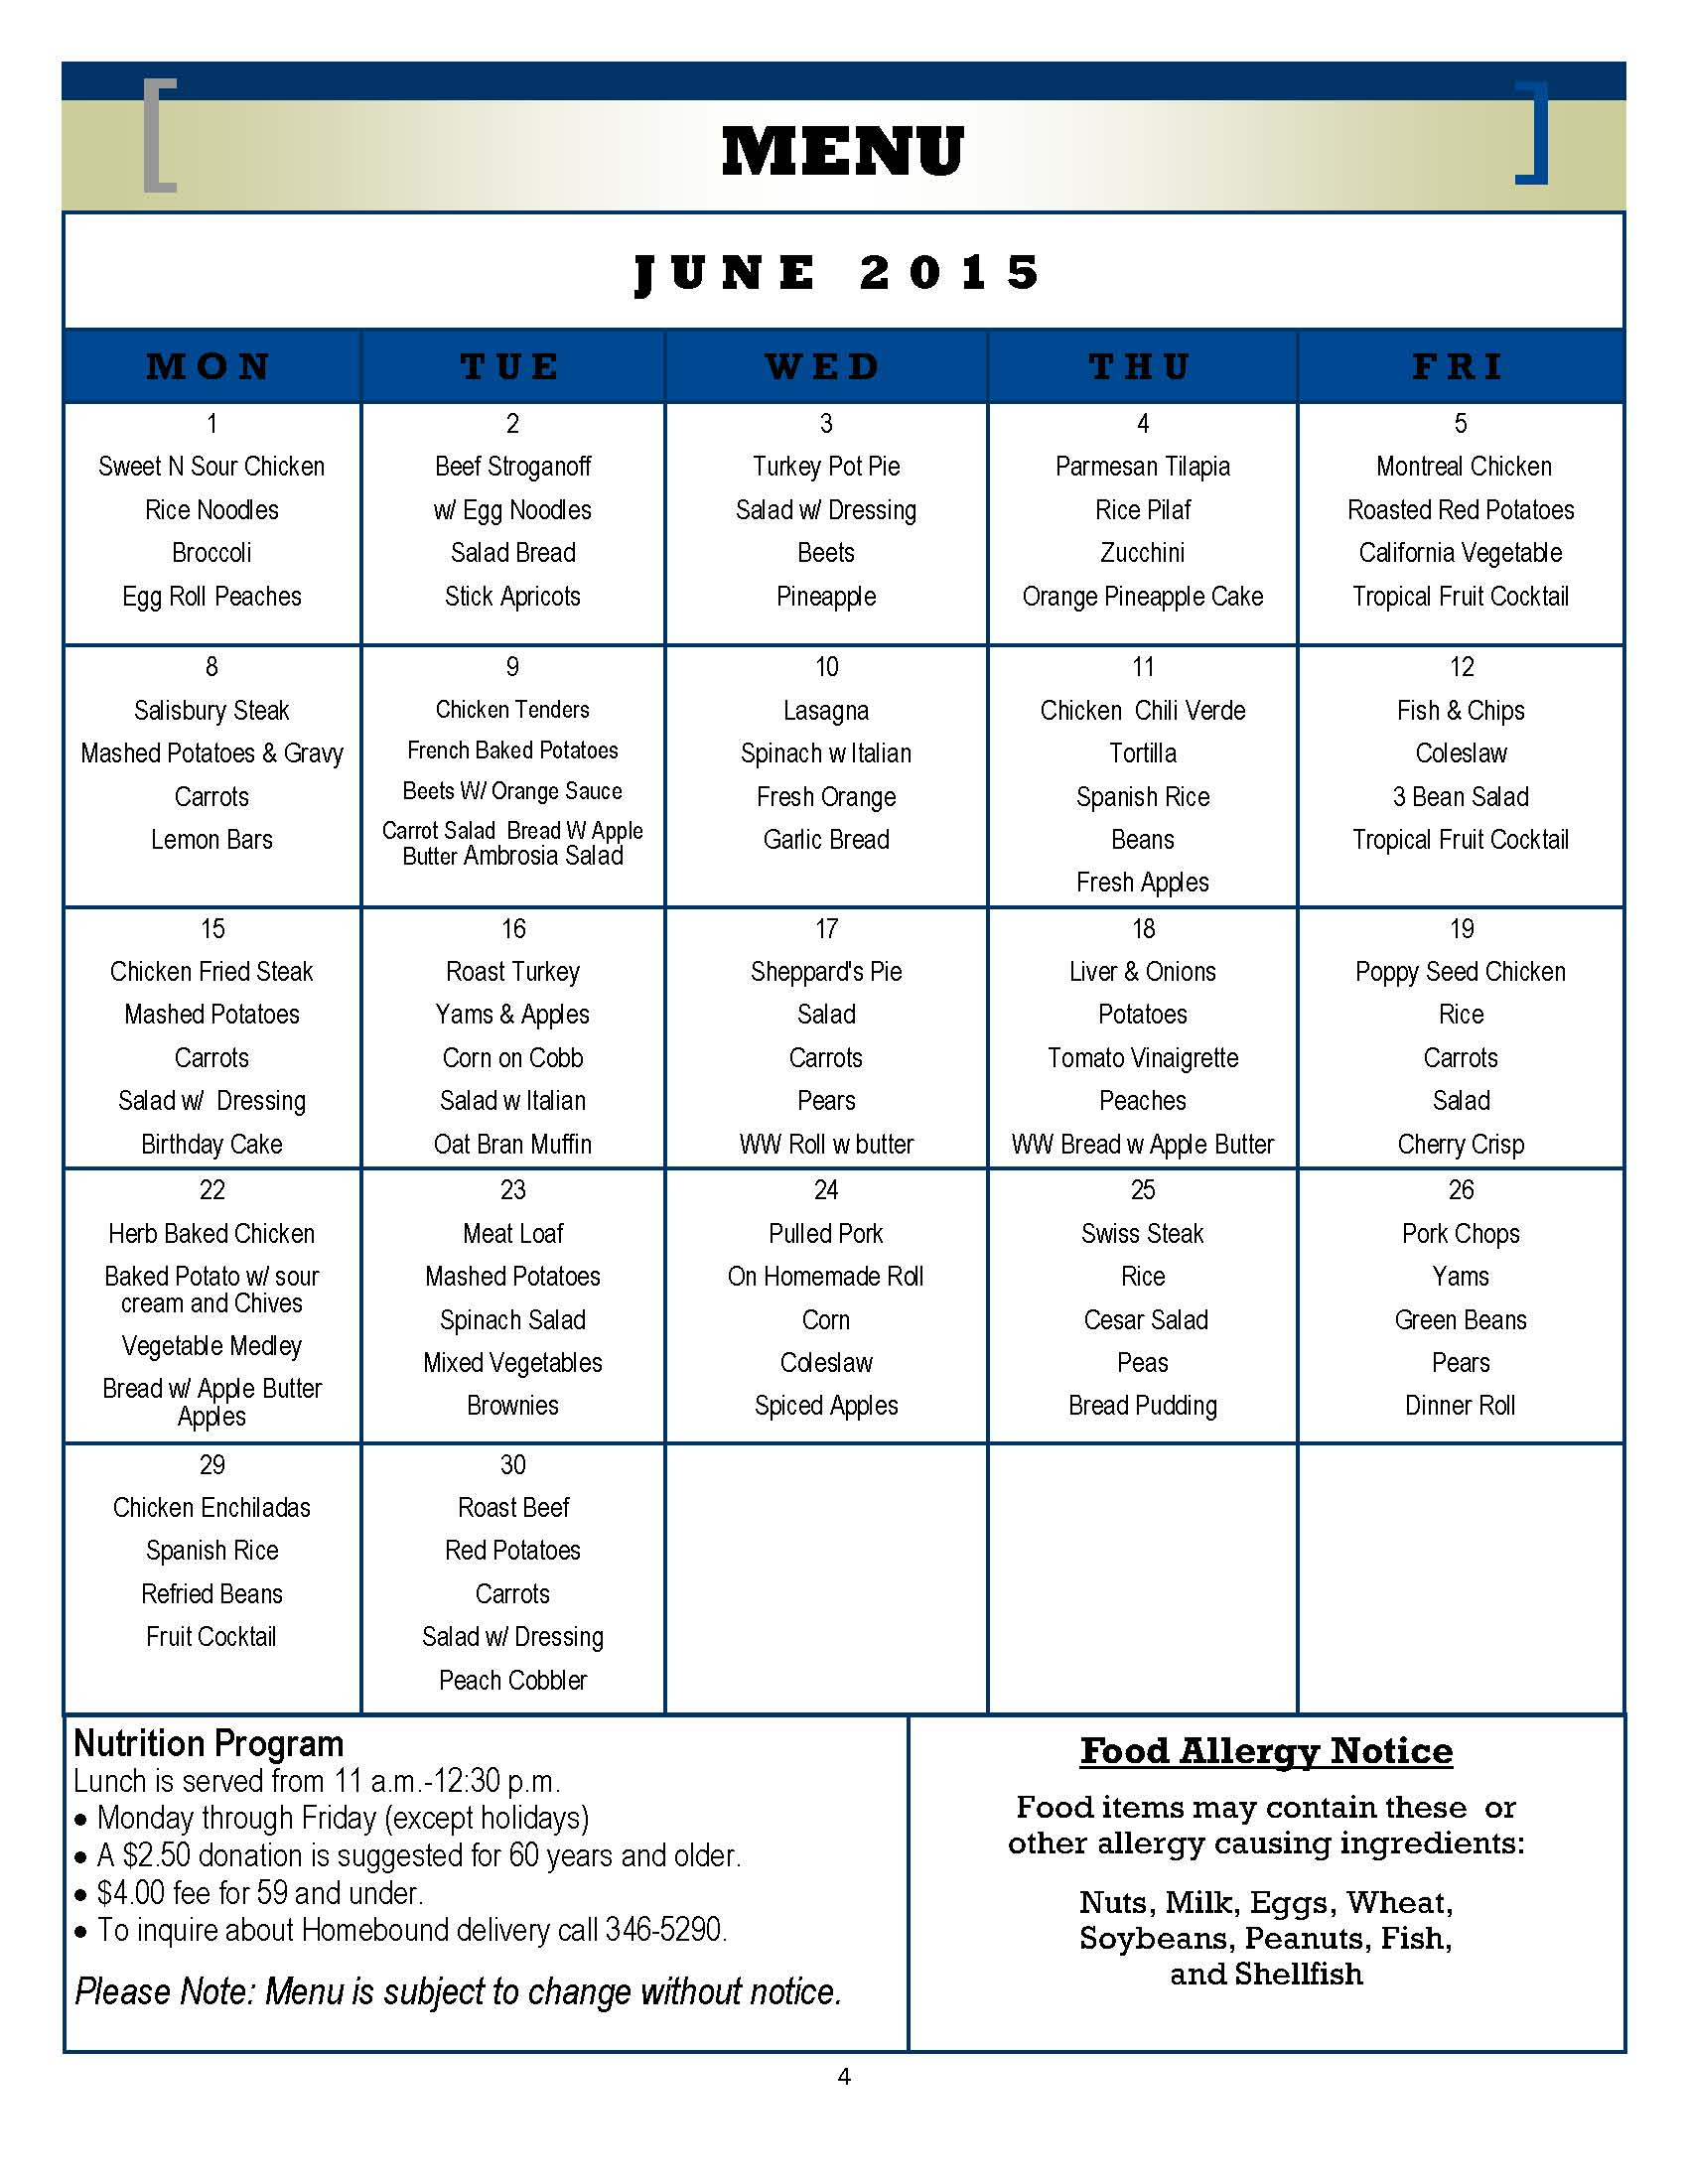 Senior Center Menu June 2015